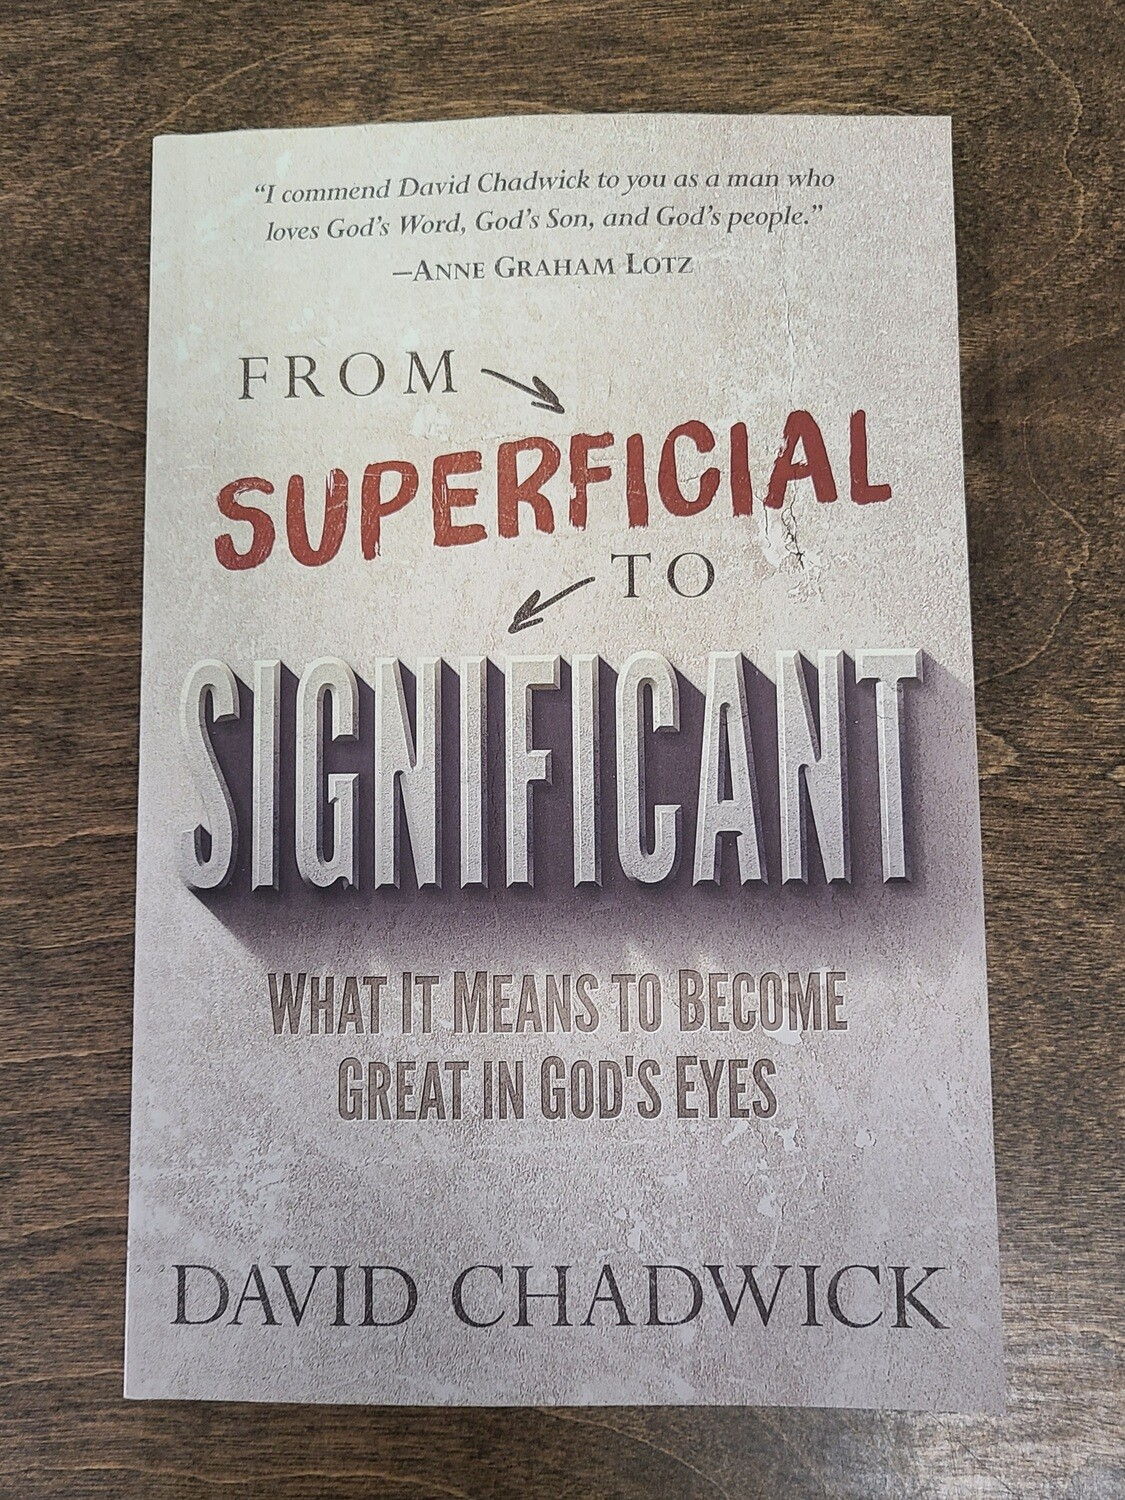 From Superficial to Significant: What it Means to Become Great in God's Eyes by David Chadwick